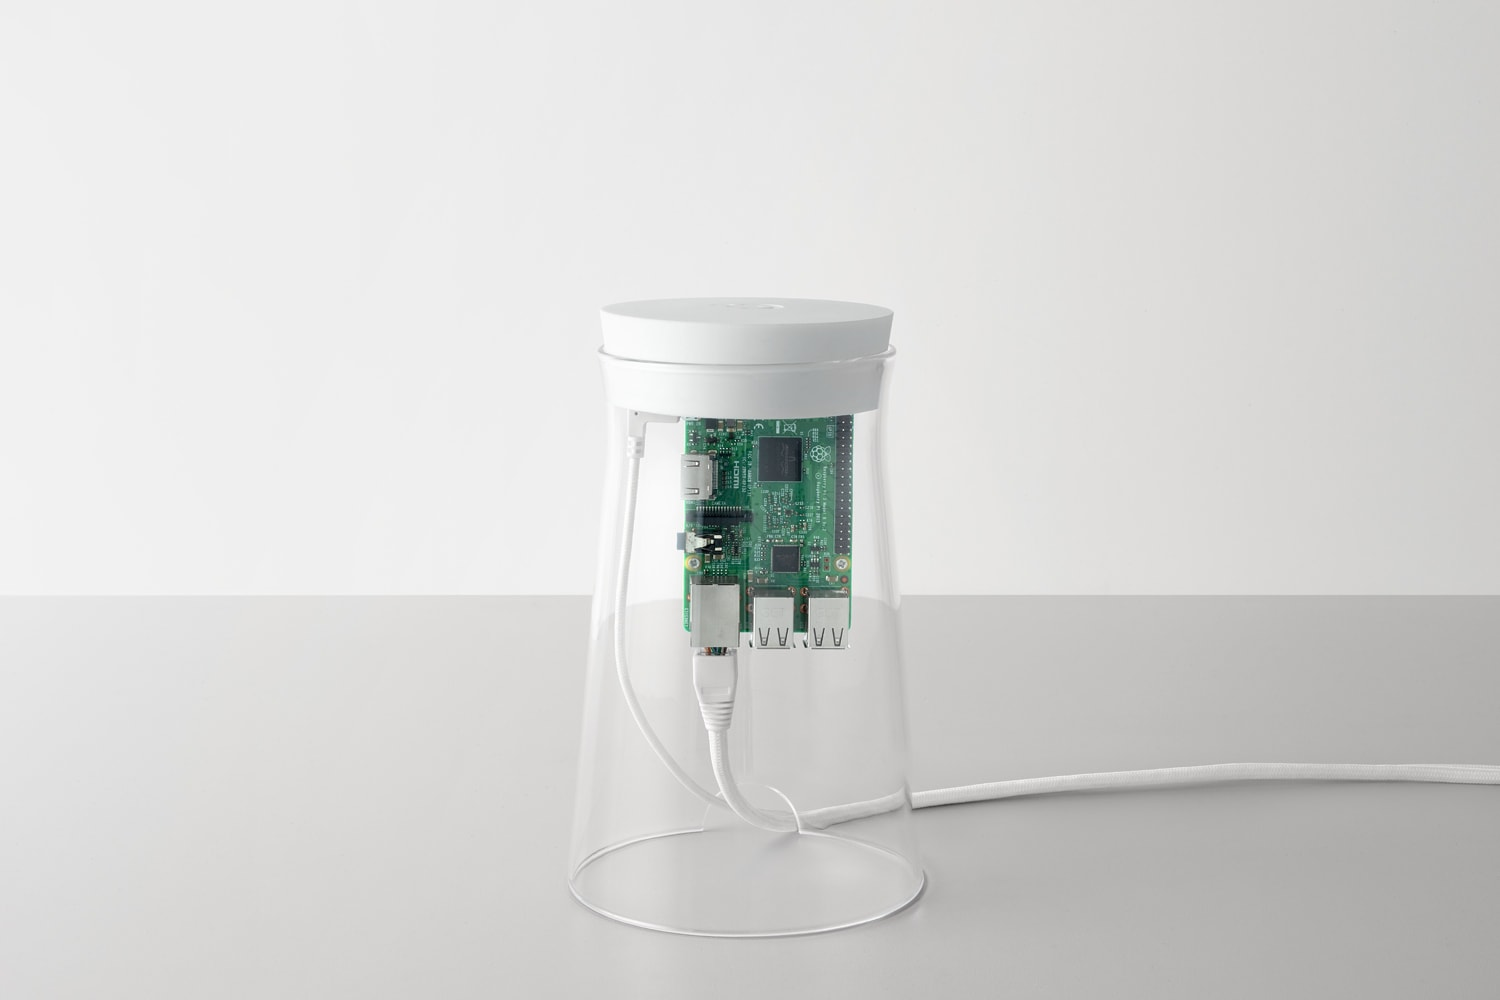 Front view of the DADI Founding Node. The components include; a glass casing with a white silicone top, attached to the top is a plastic component which has a Raspberry Pi circuit board mounted on to it. There are cables connected to the Raspberry Pi which exit the glass casing through a small semi-circle shaped gap.